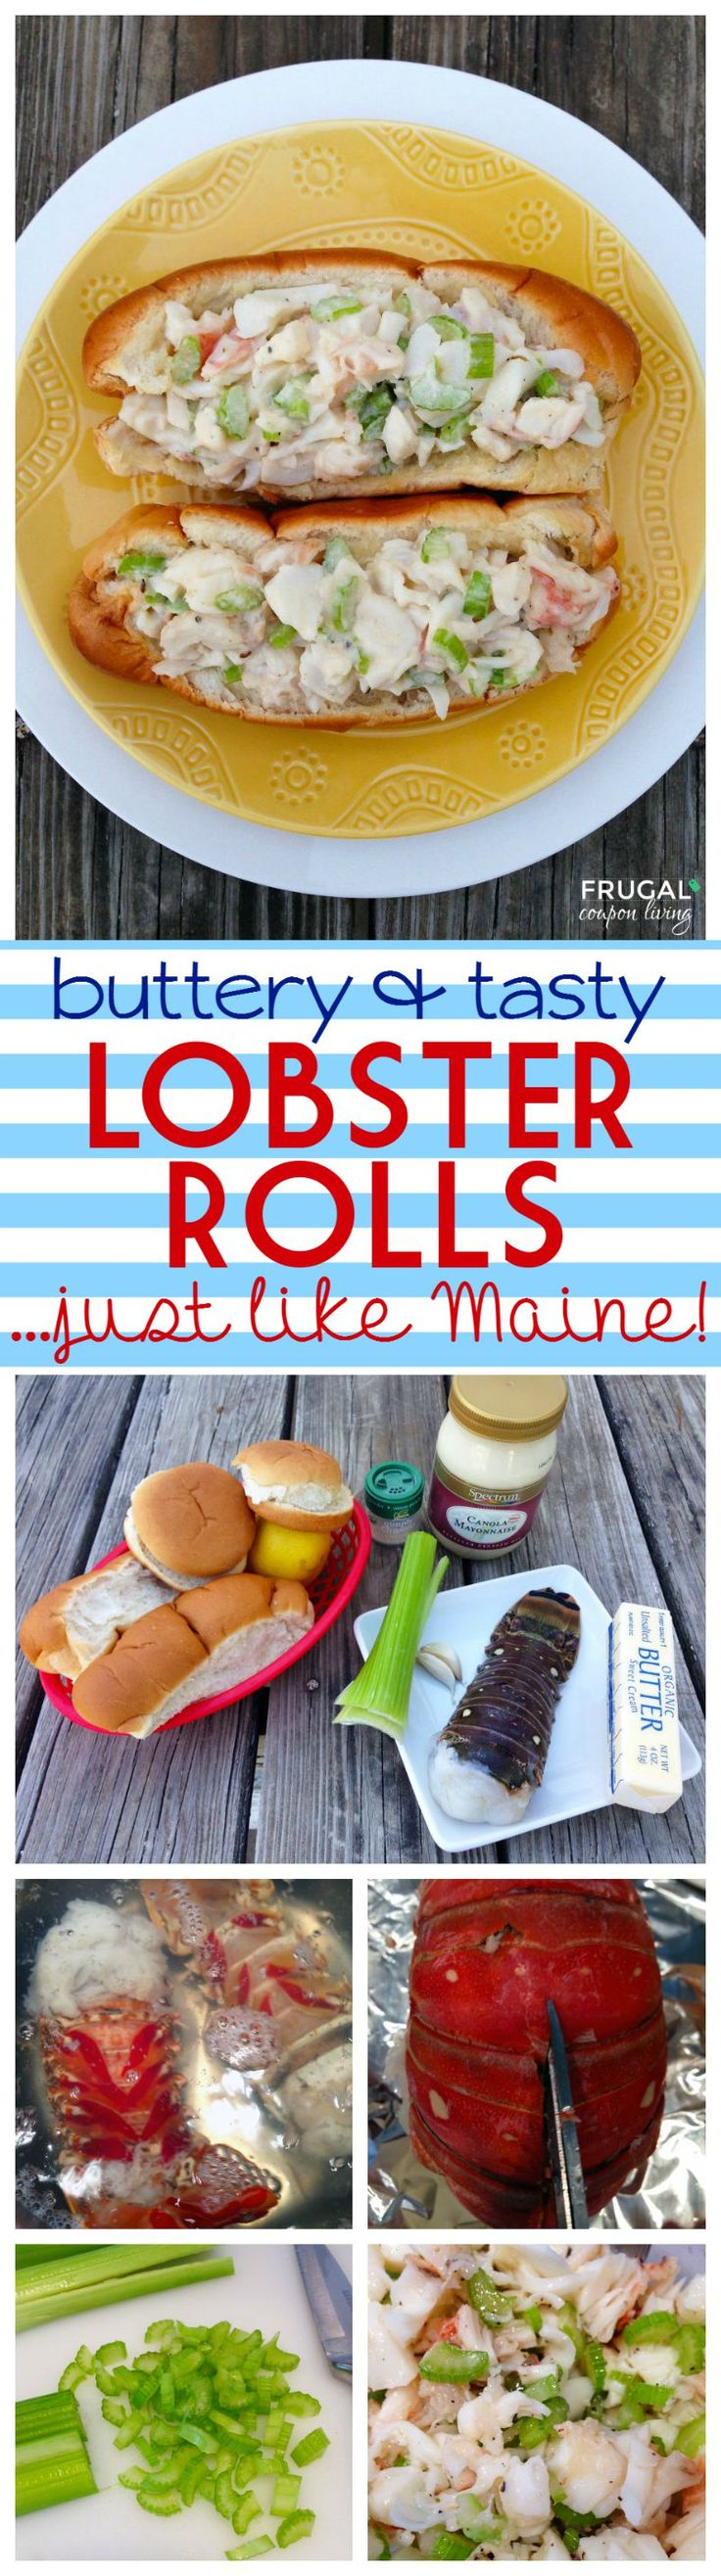 Amazing Homemade Lobster Rolls - Just like Maine! Recipe (from Scratch ...